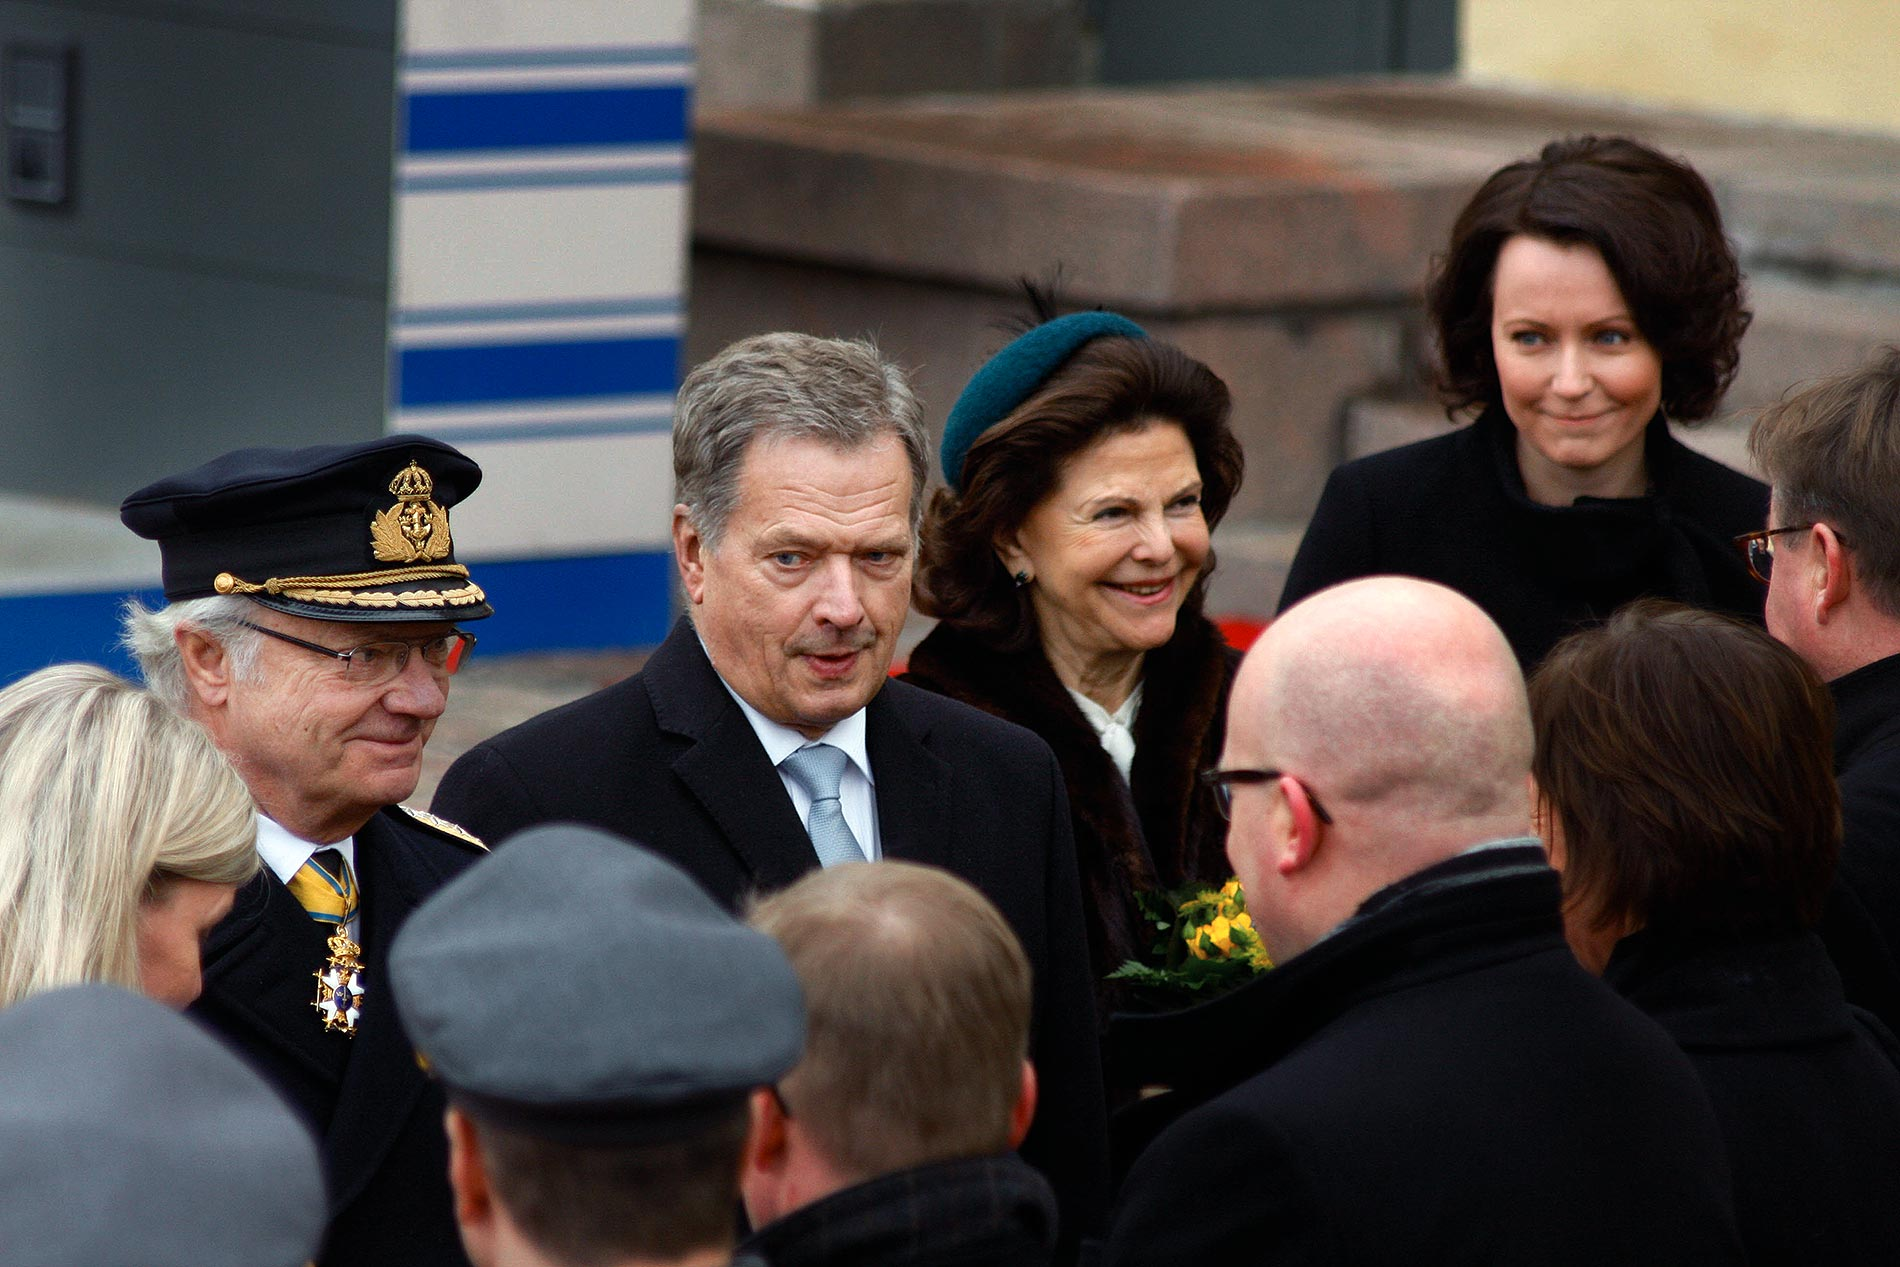 PICTURES: King Gustaf and Queen Silvia of Sweden Arrive at the Presidential Palace